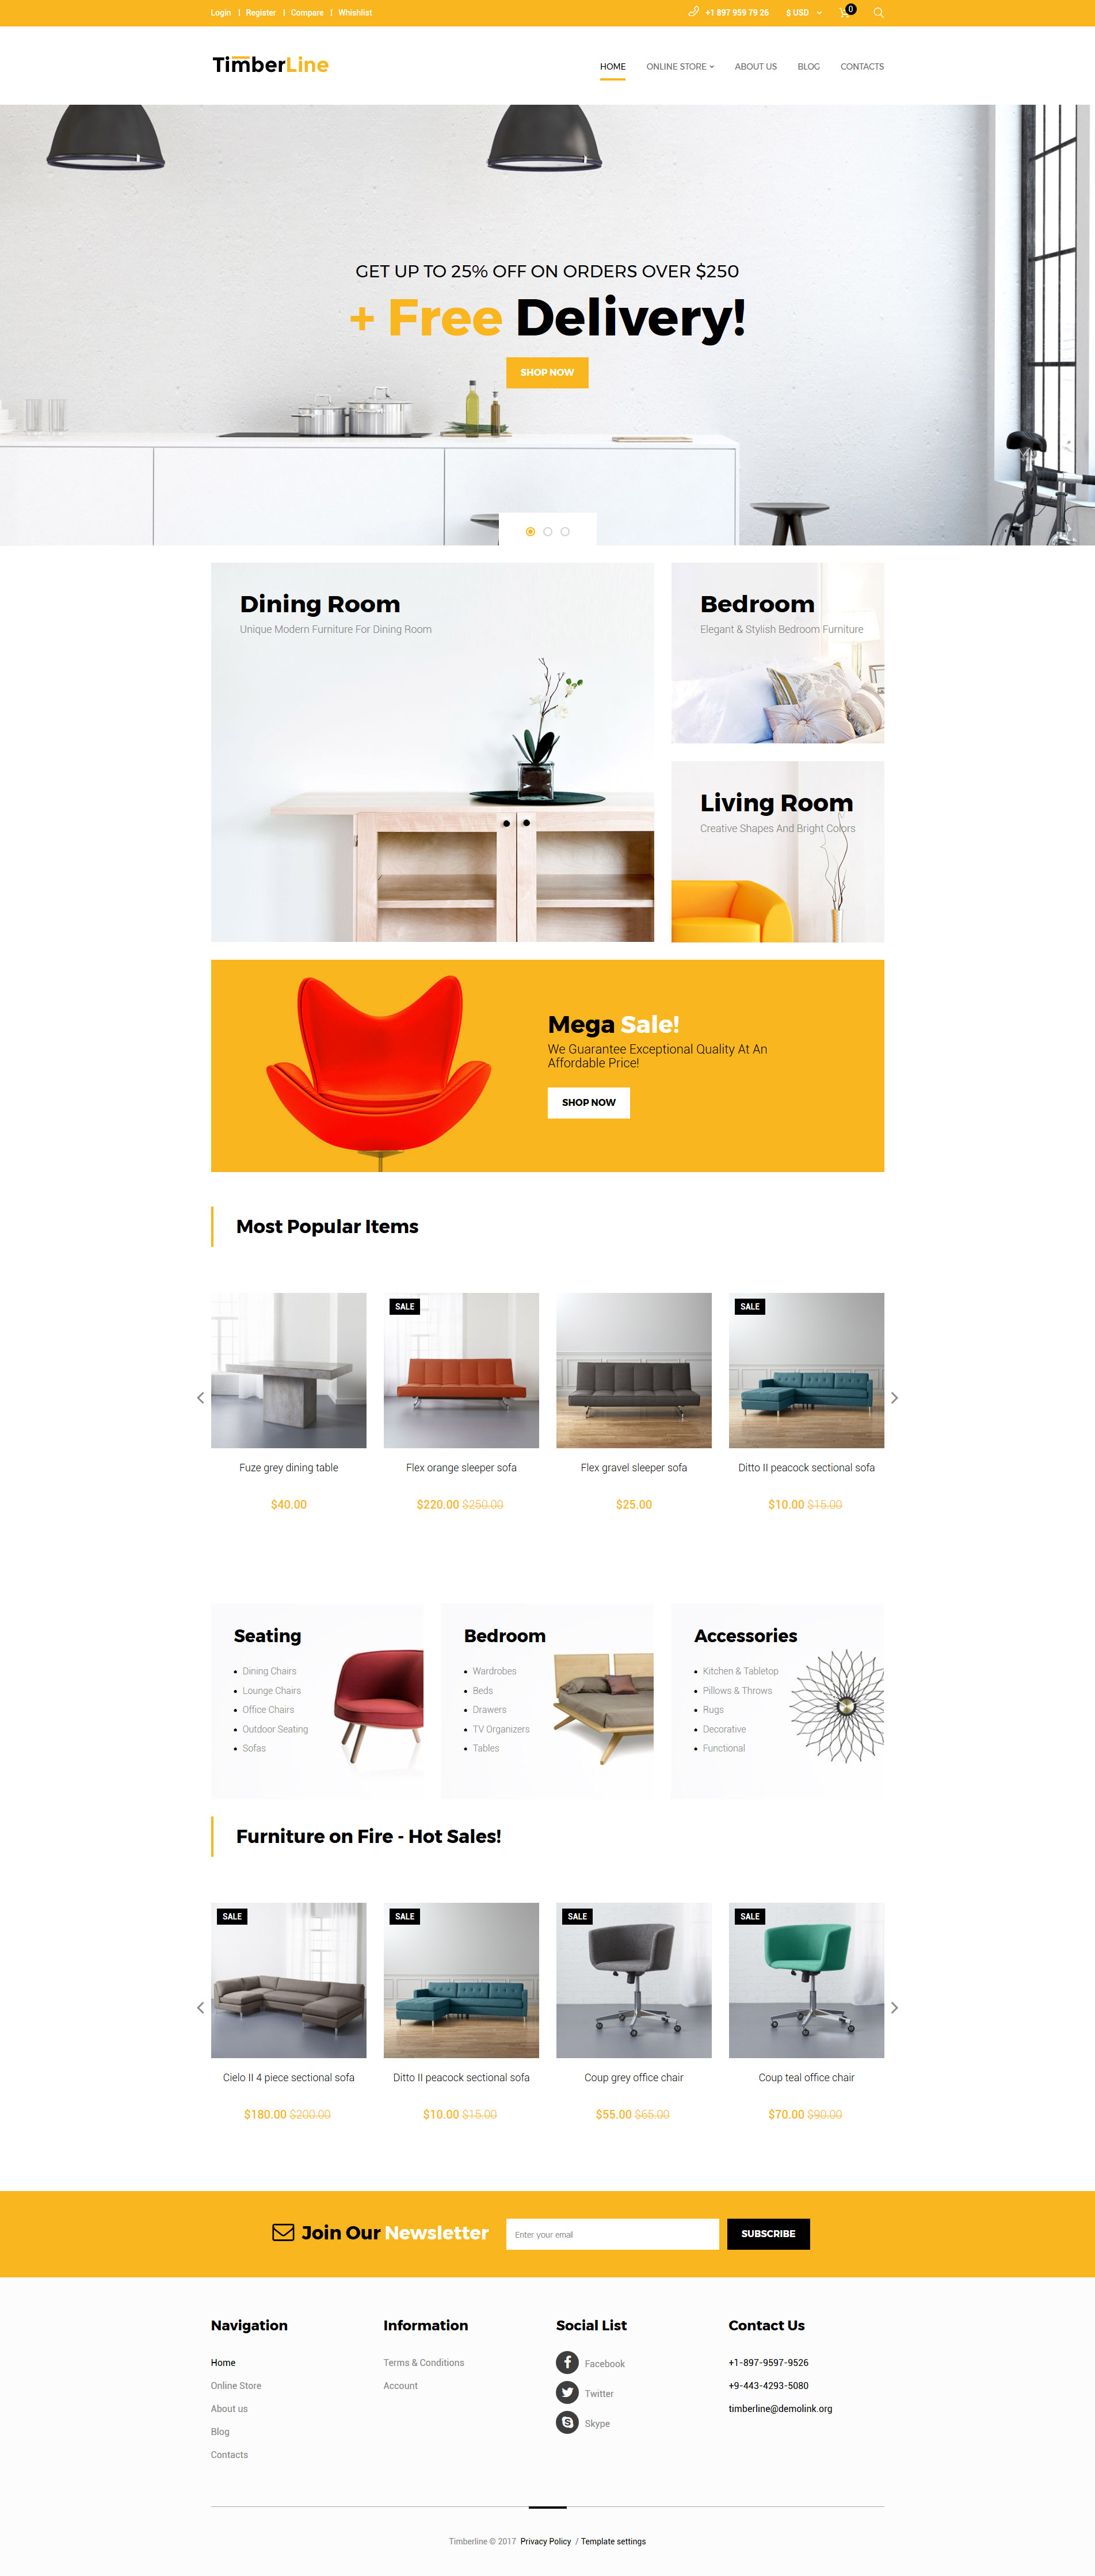 VirtueMart Templates | VirtueMart Themes | Template Monster